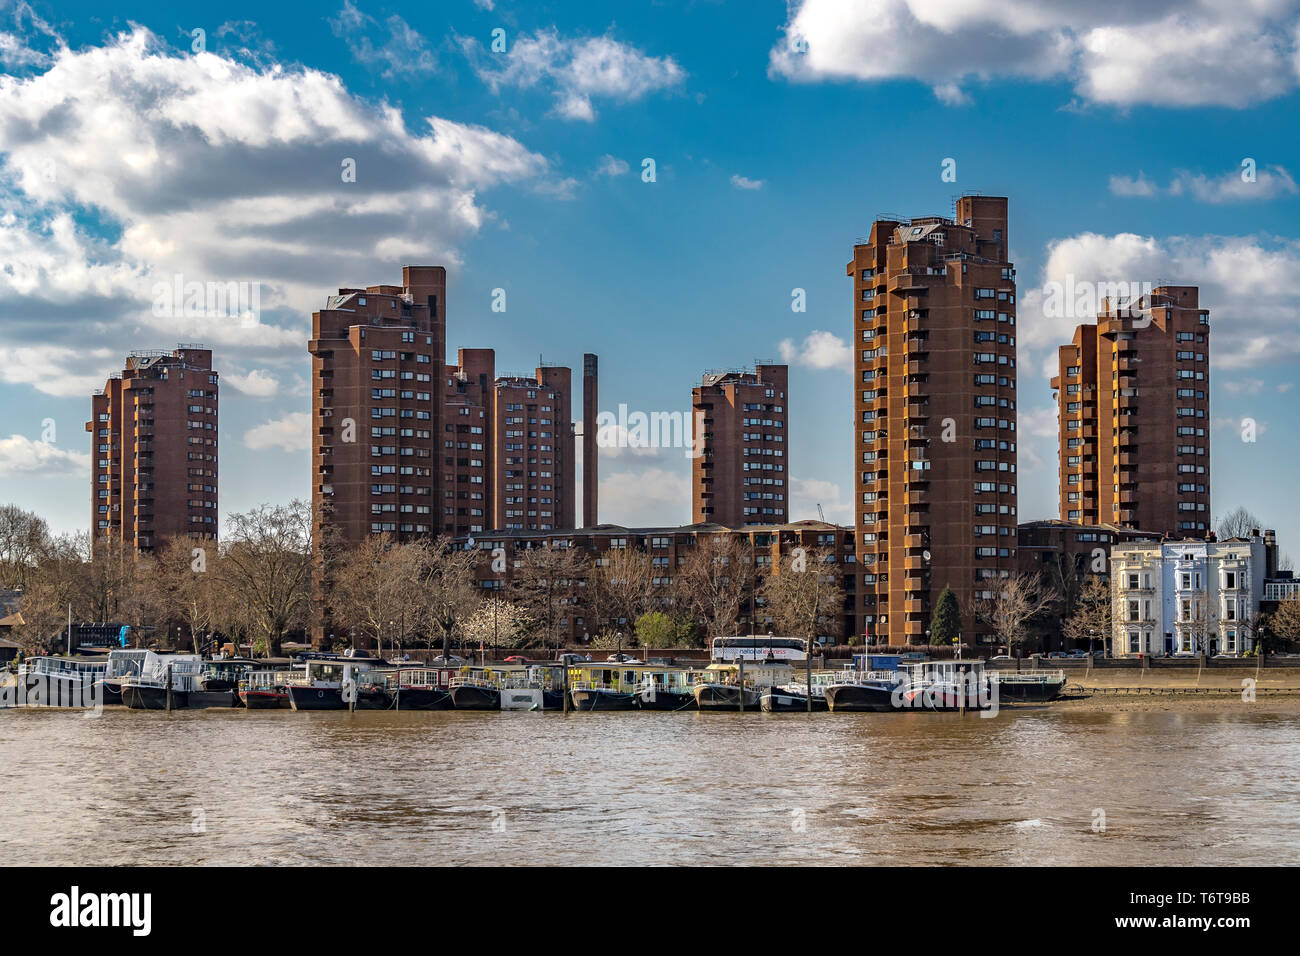 The 7 high-rise tower blocks of The World's End Estate ,Chelsea from across The River Thames - Stock Image